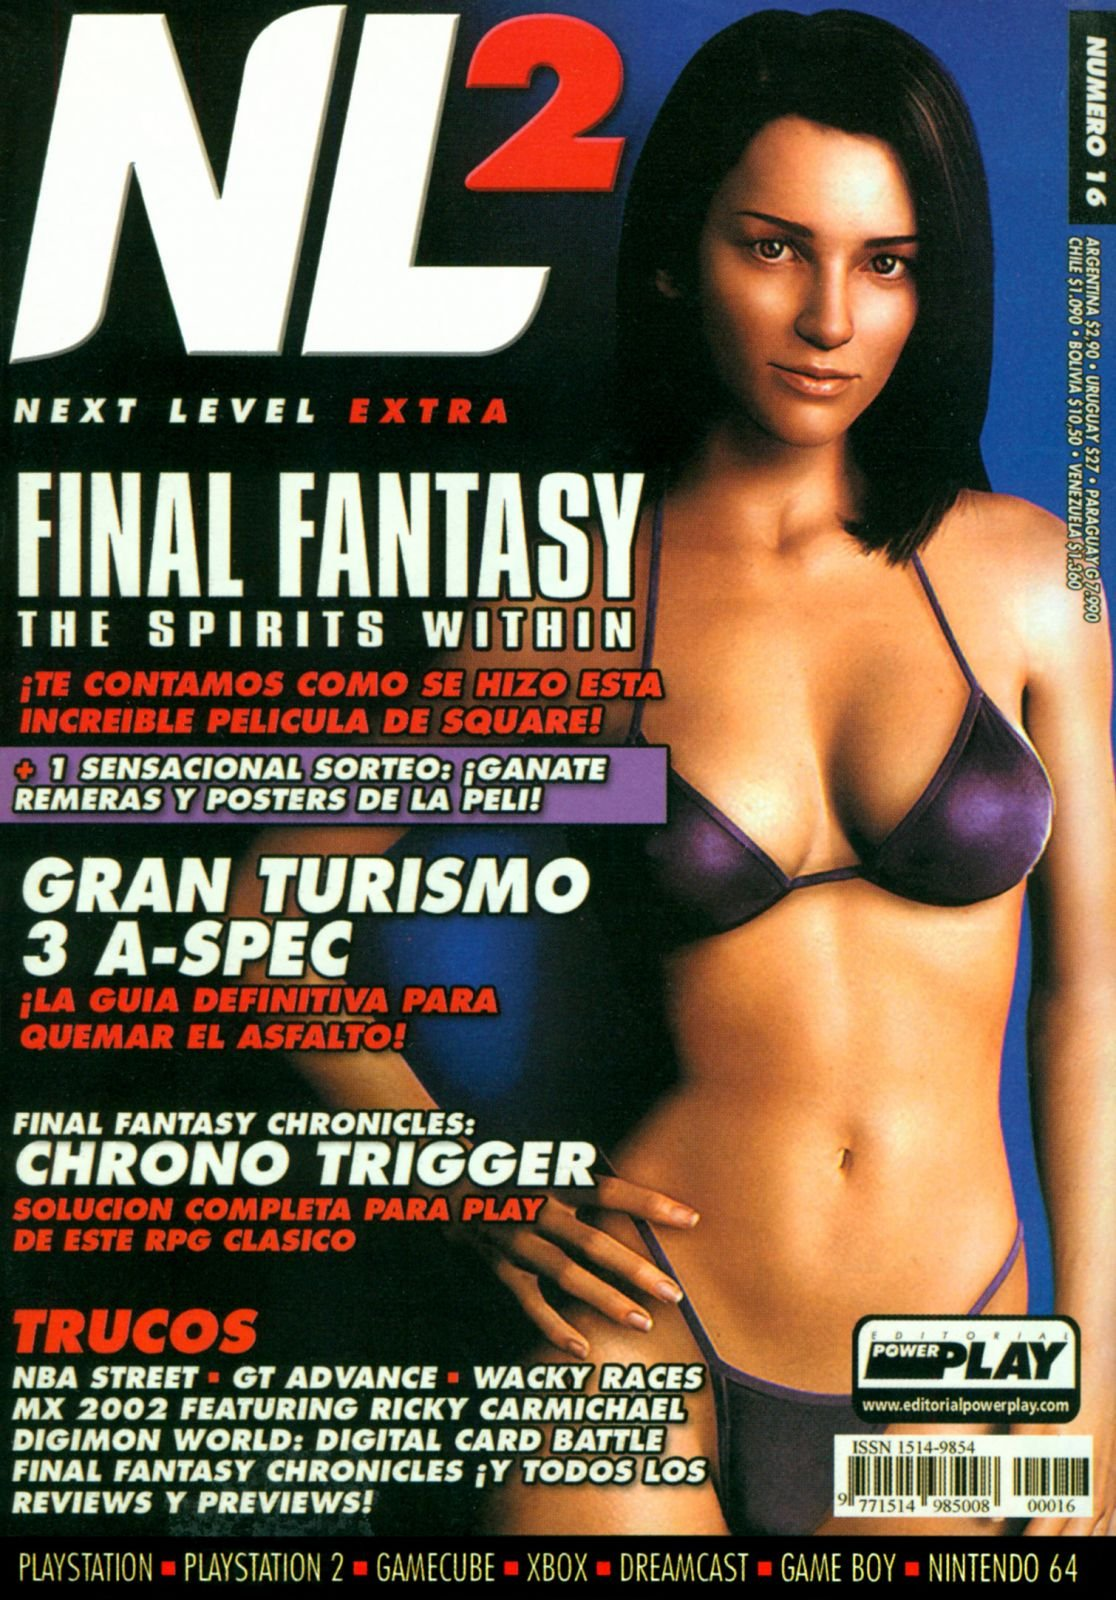 Next Level Extra 16 August 2001